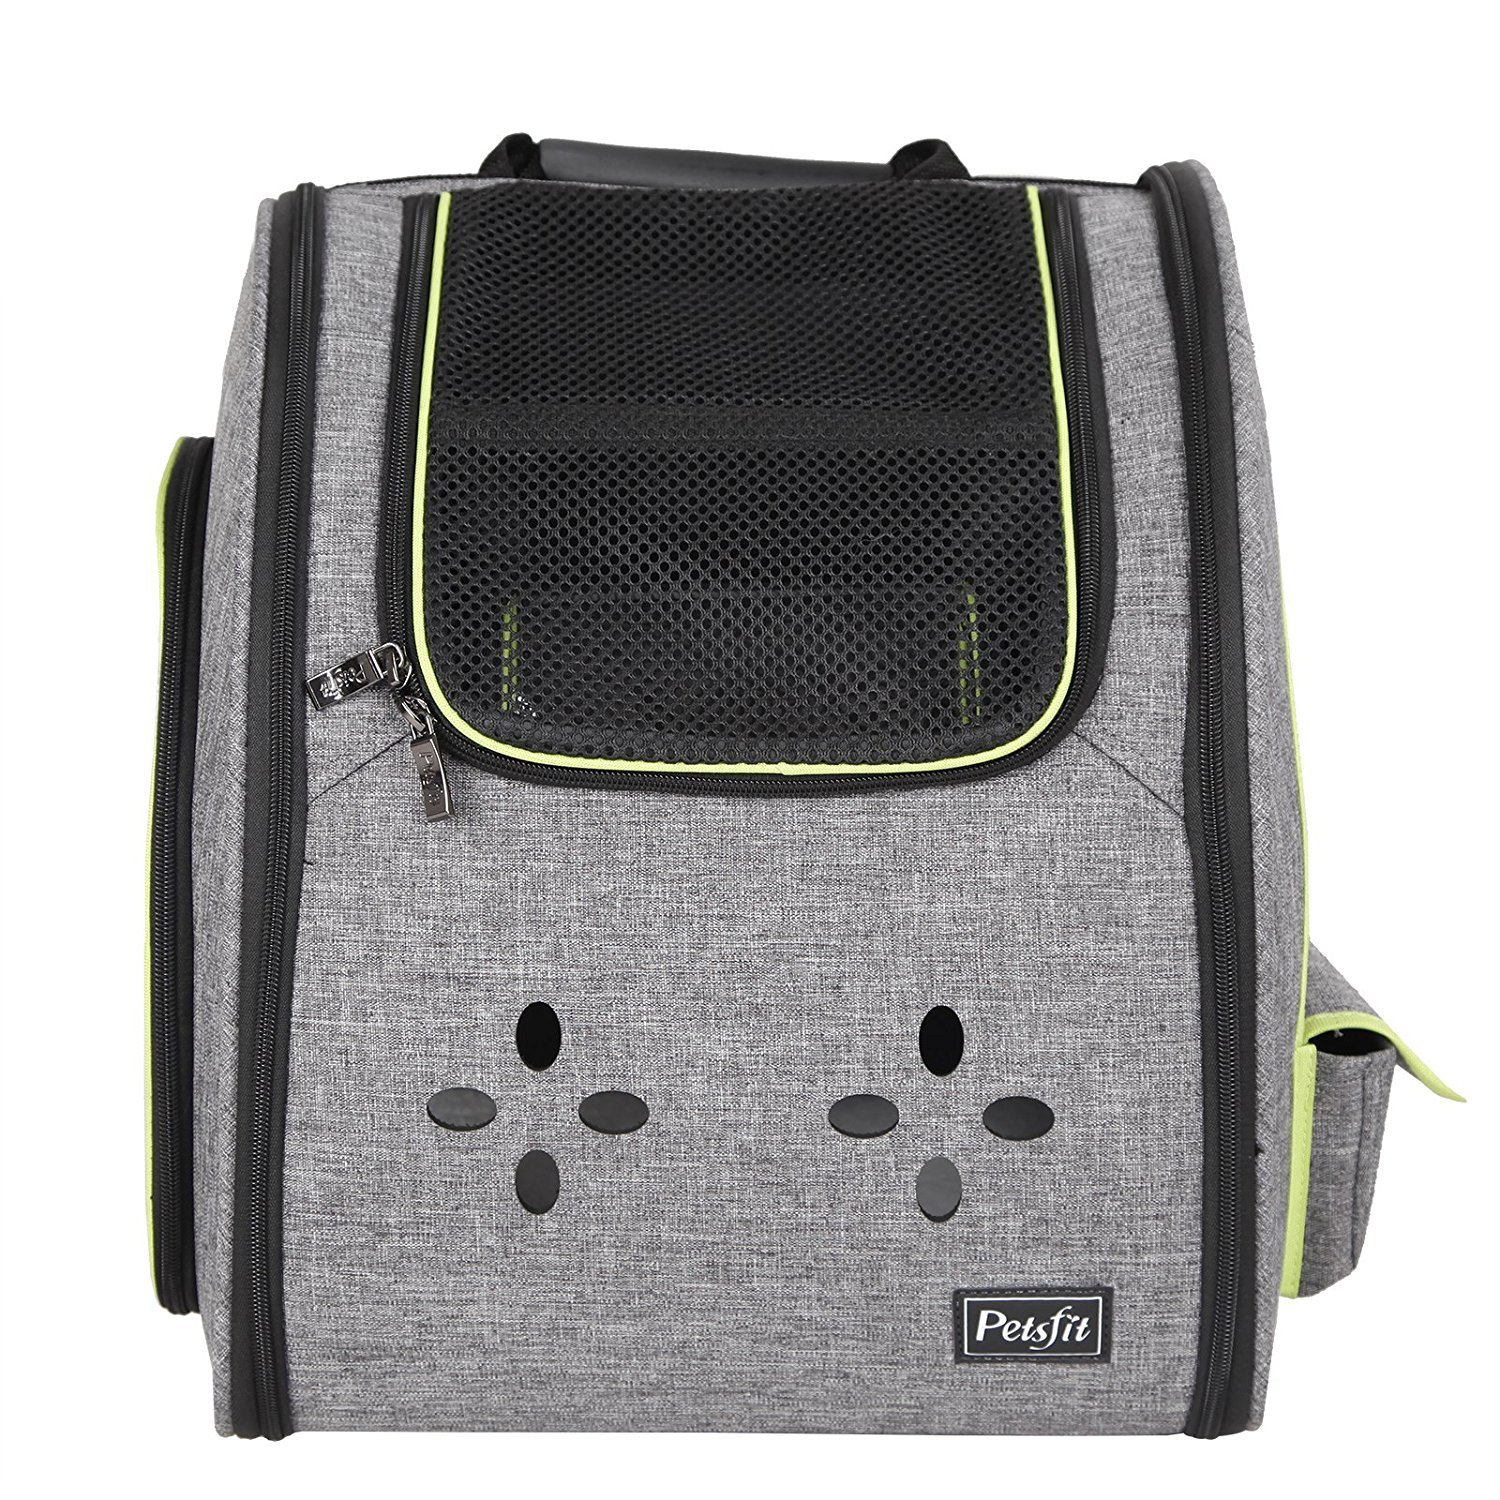 Petsfit Dogs Carriers Backpack for Cat/Dog/Guinea Pig/Bunny Durable and Comfortable Pet Bag by Petsfit (Image #4)